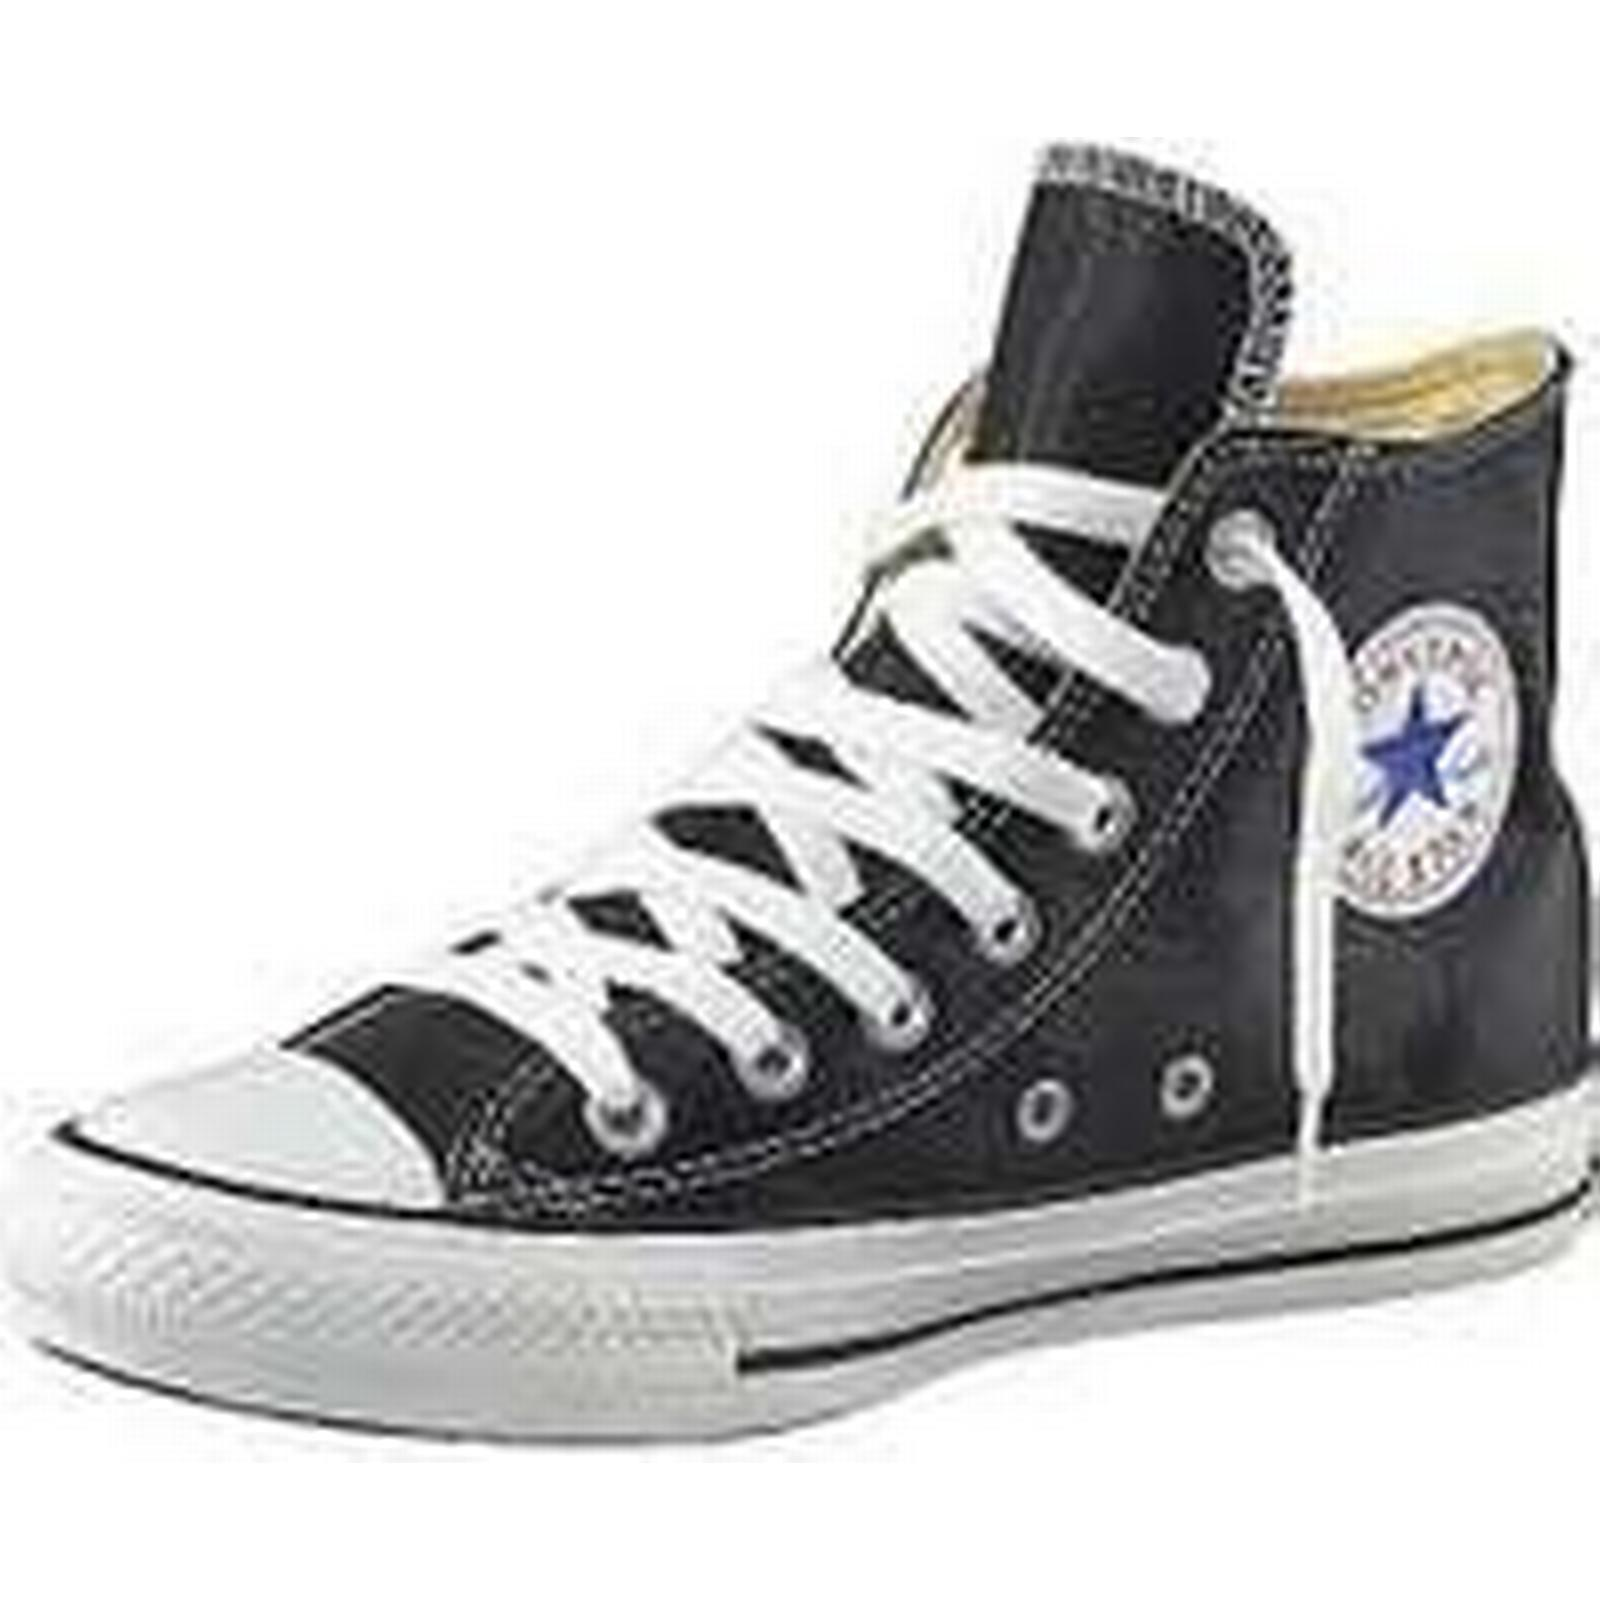 Converse Black Black Converse 'All Star Basic Leather' Trainers by Converse f8aaf0